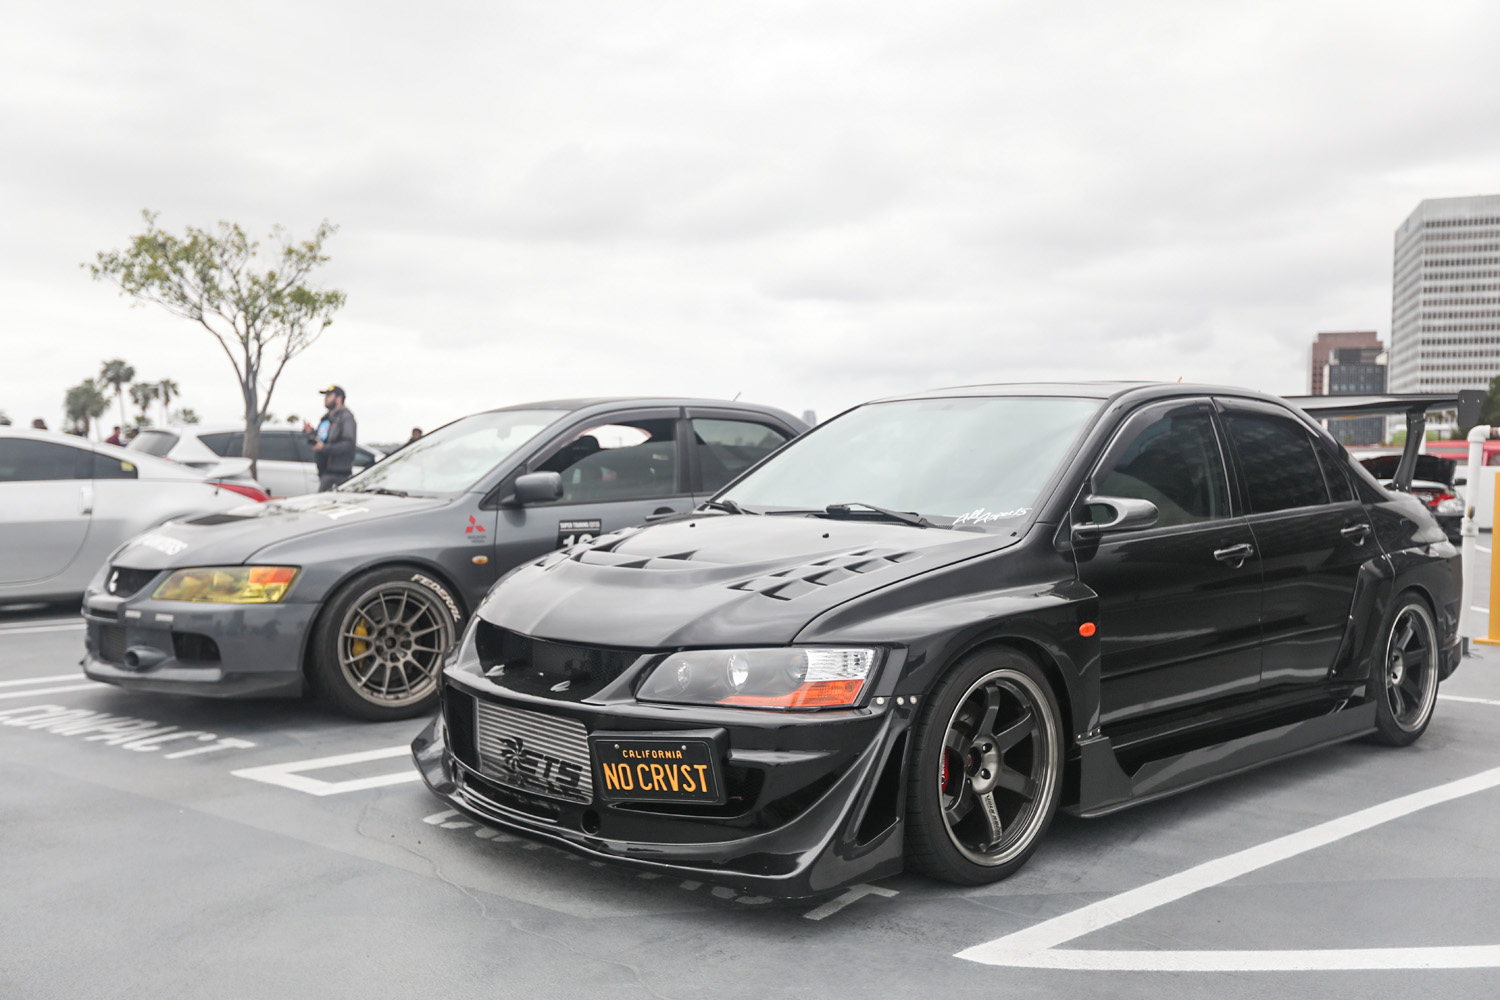 Petersen Automotive Museum's Japanese Car Cruise-In